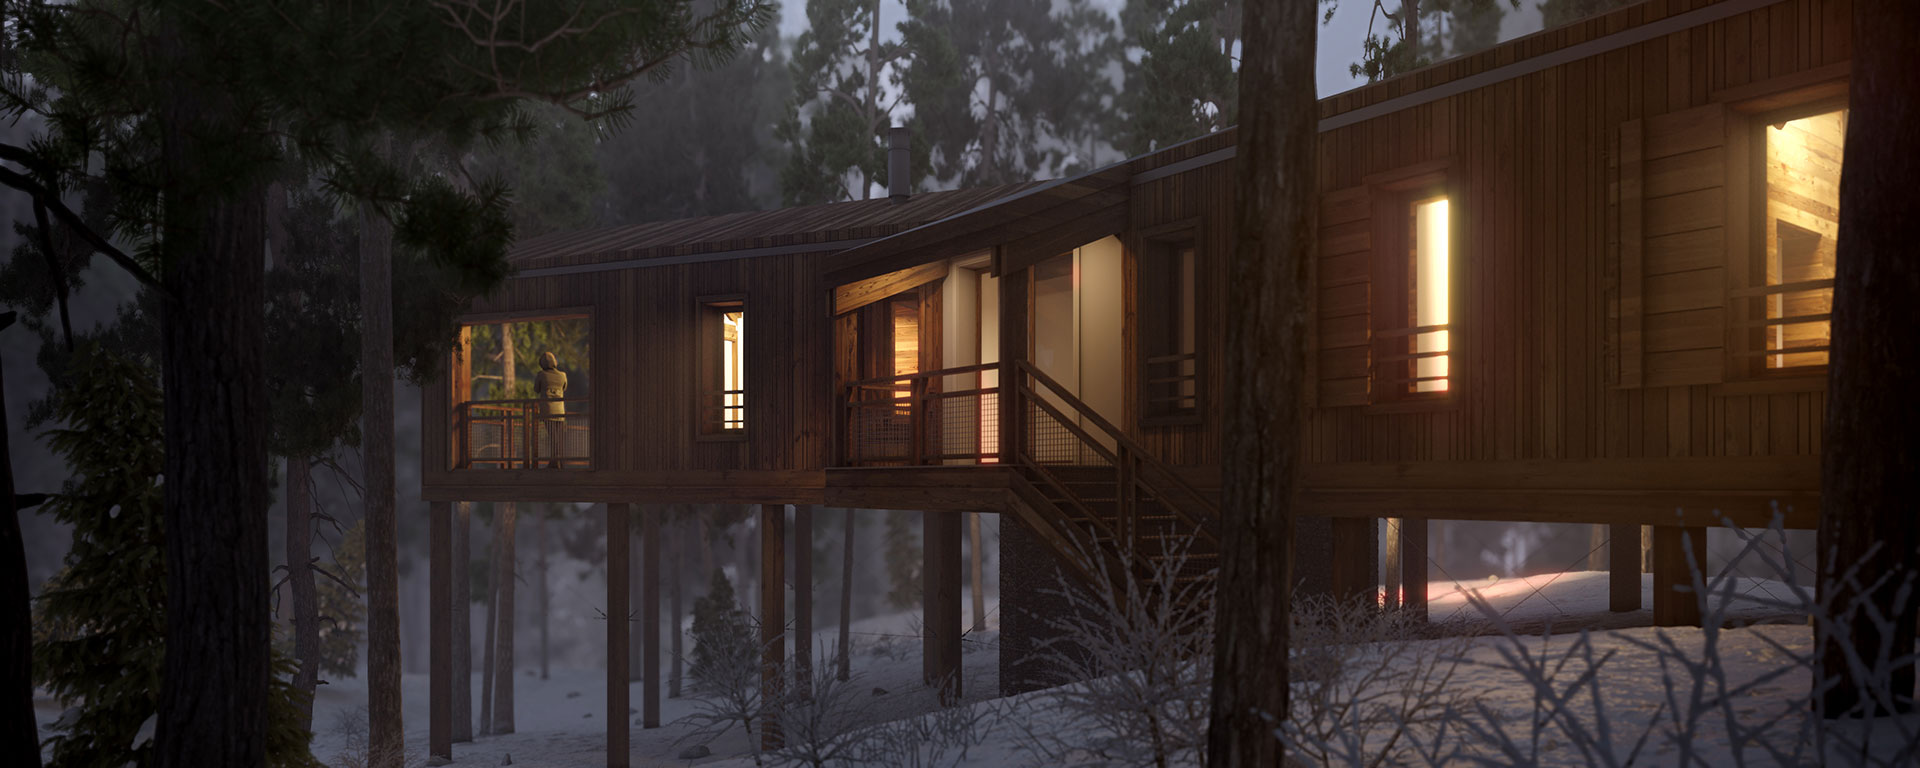 Visualization in 3D of the exterior of a highend cabin